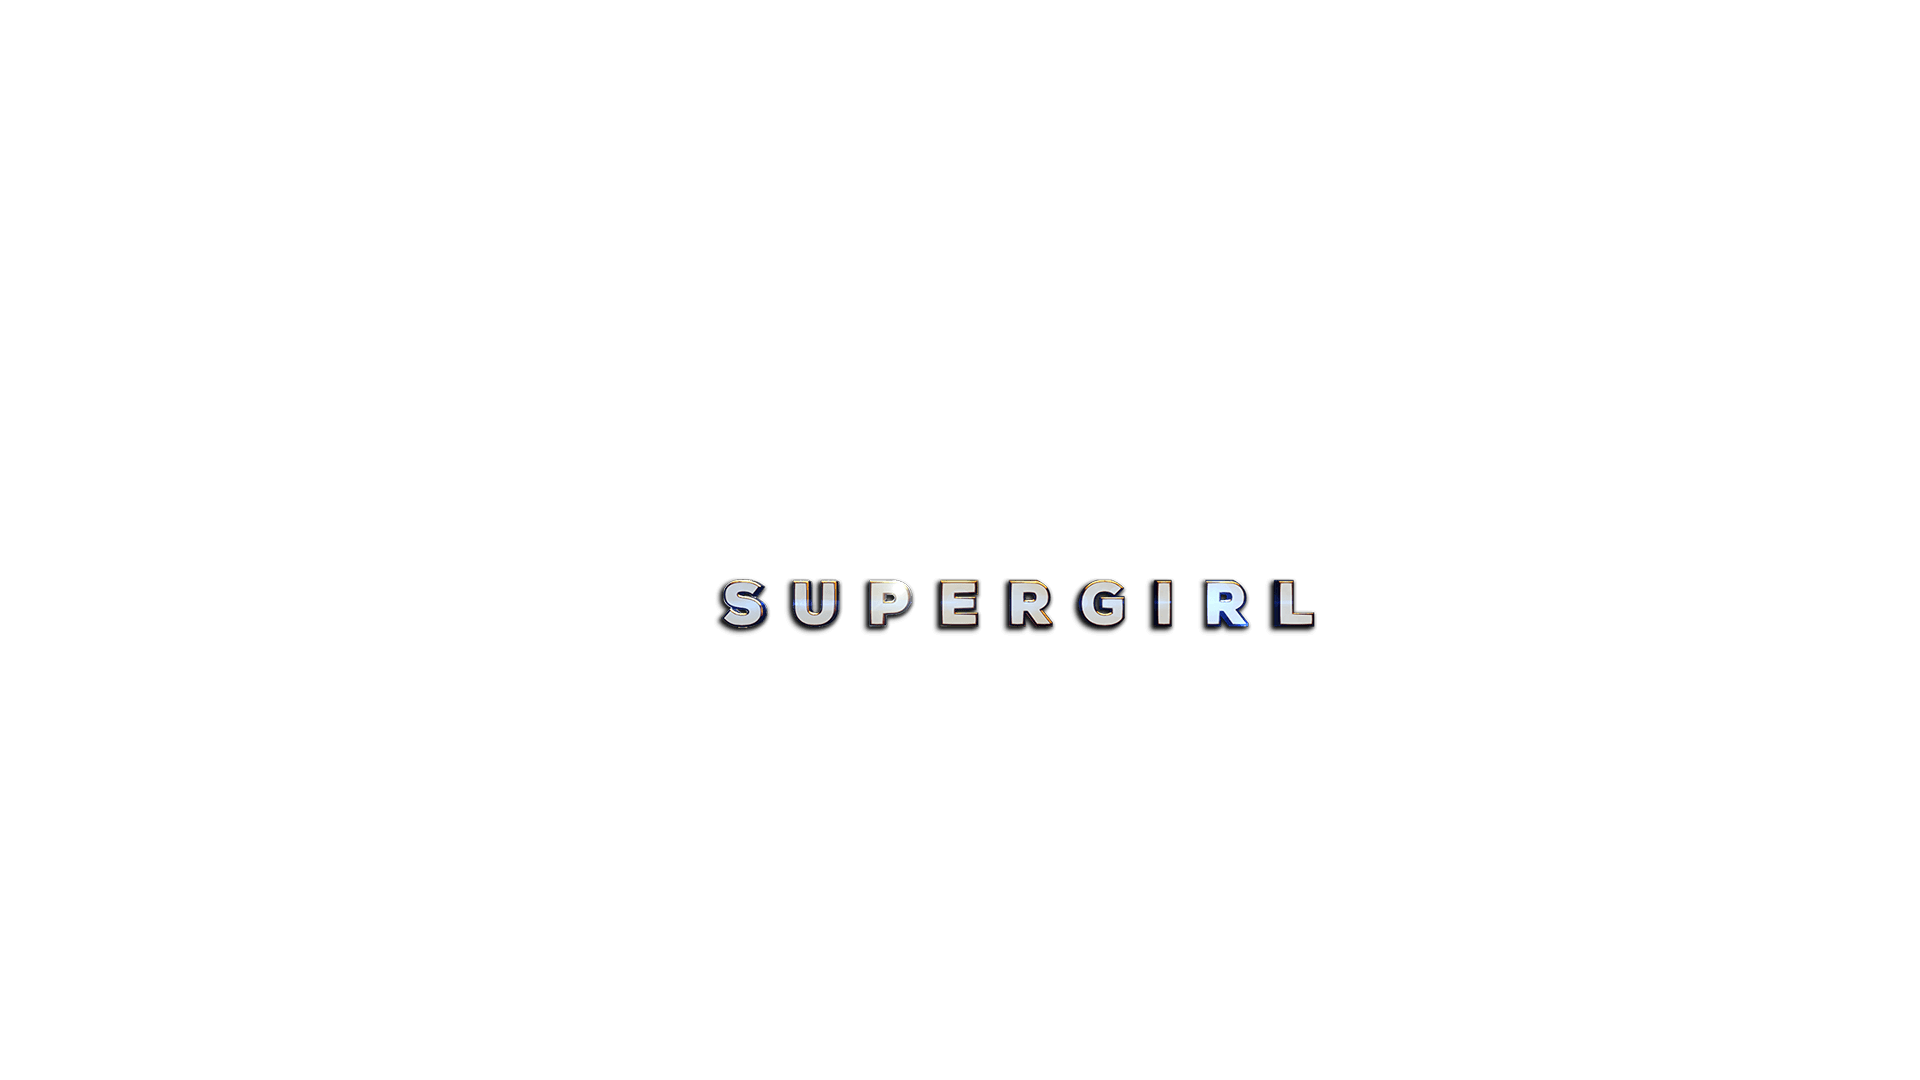 Supergirl tv logo png. Zee caf parallax